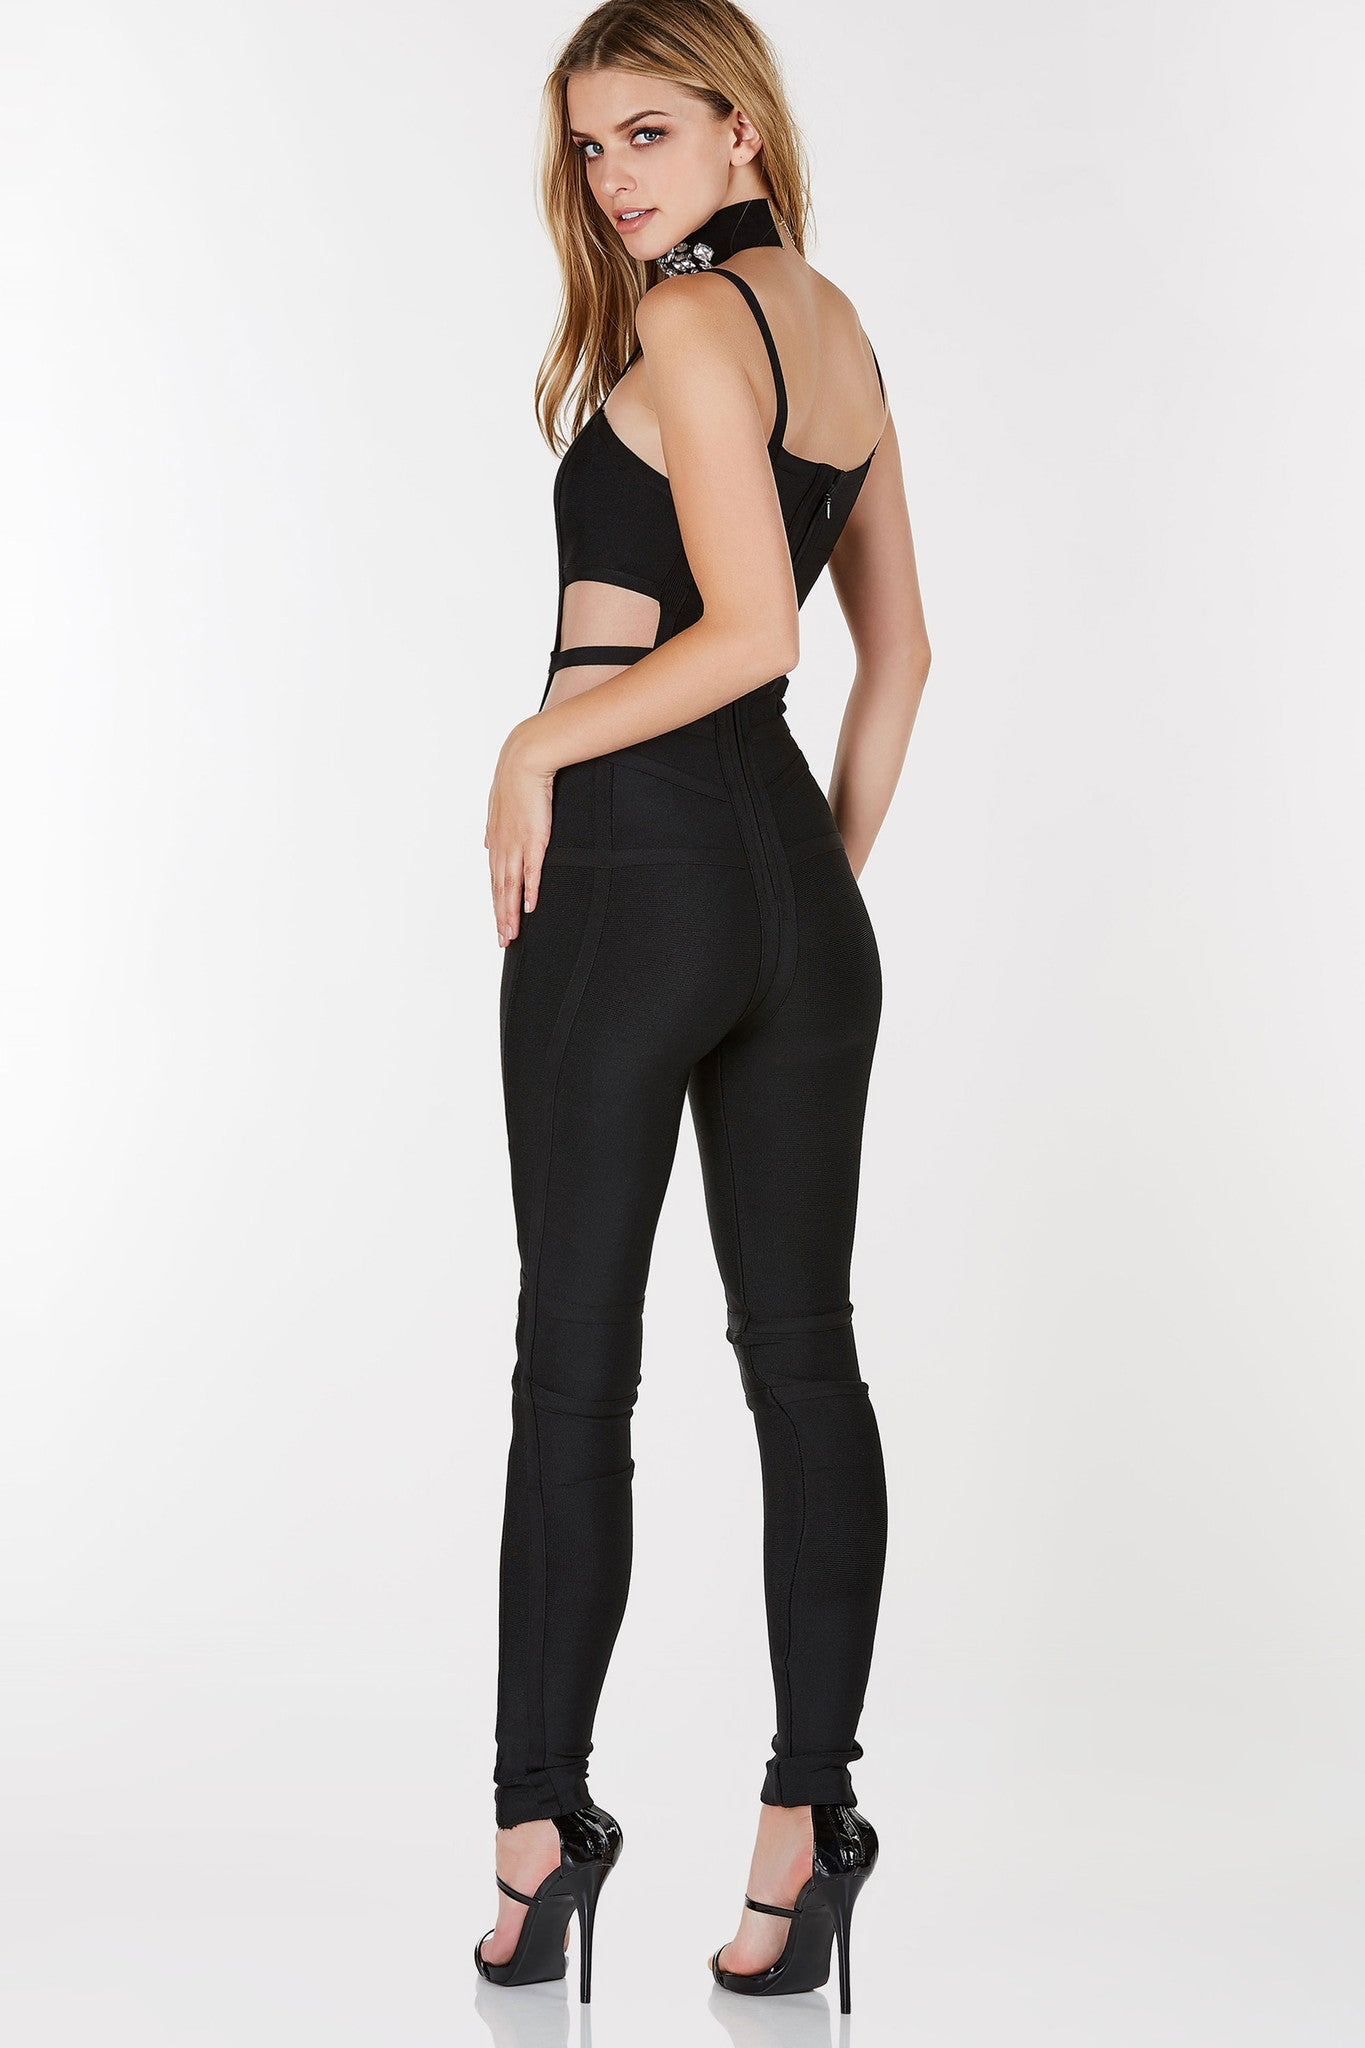 Bandage style jumpsuit with cut outs on each side. Slim fit with comfortable stretch and back zip closure.